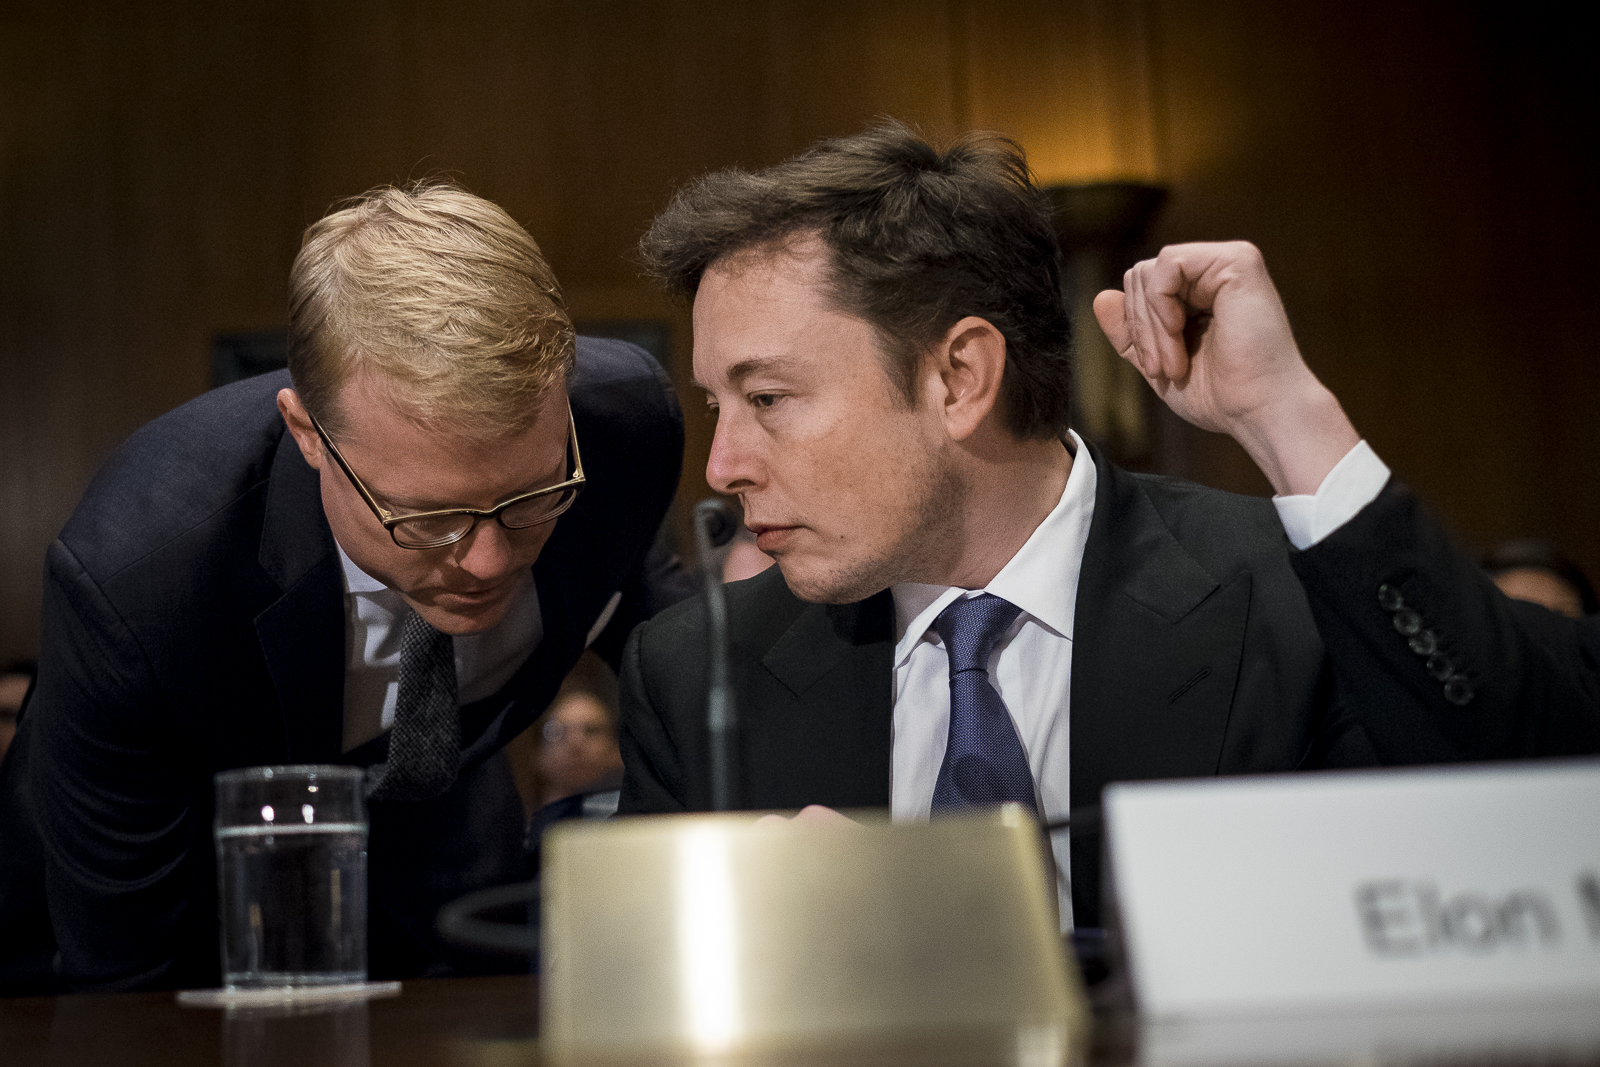 Elon Musk, CEO and chief designer of Space Exploration Technologies (SpaceX), prepares to testify at a Senate Appropriations Defense subcommittee hearing on Capitol Hill in Washington, D.C., U.S., on Wednesday, March 5, 2014. The hearing dealt with the National Security Space Launch Programs. Photo:Pete Marovich/Bloomberg